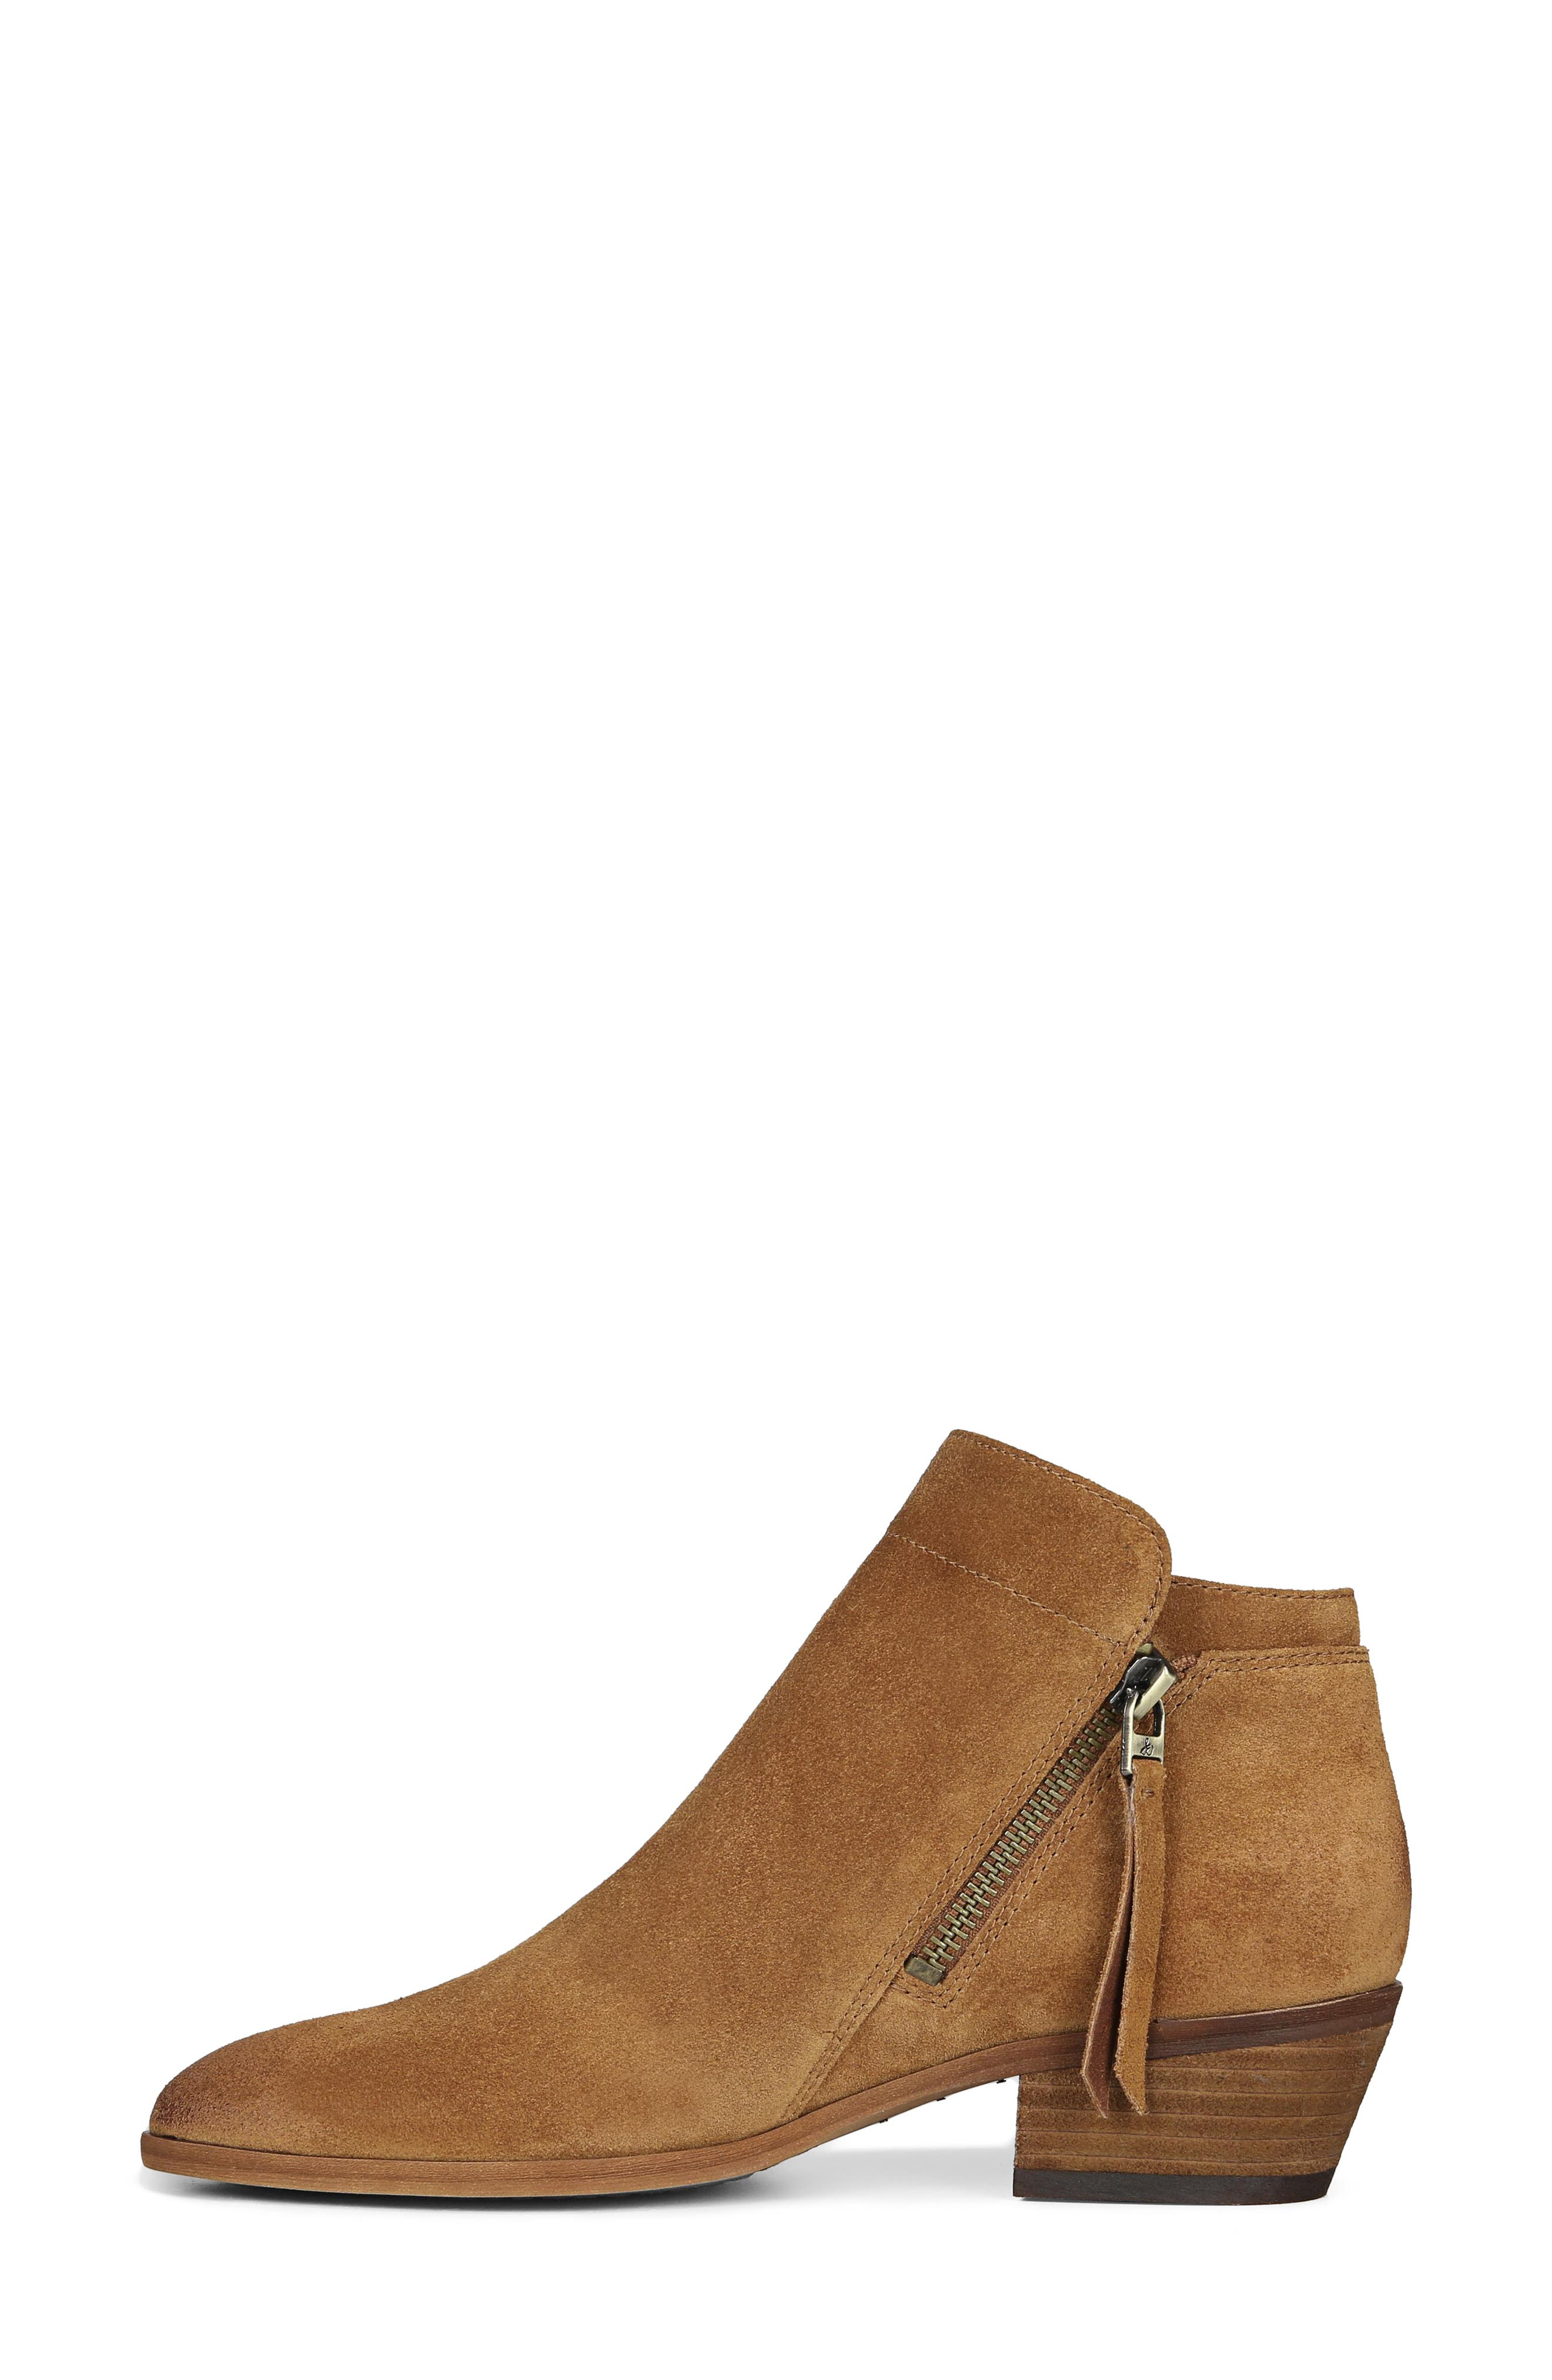 Packer Bootie,                             Alternate thumbnail 7, color,                             LUGGAGE SUEDE LEATHER